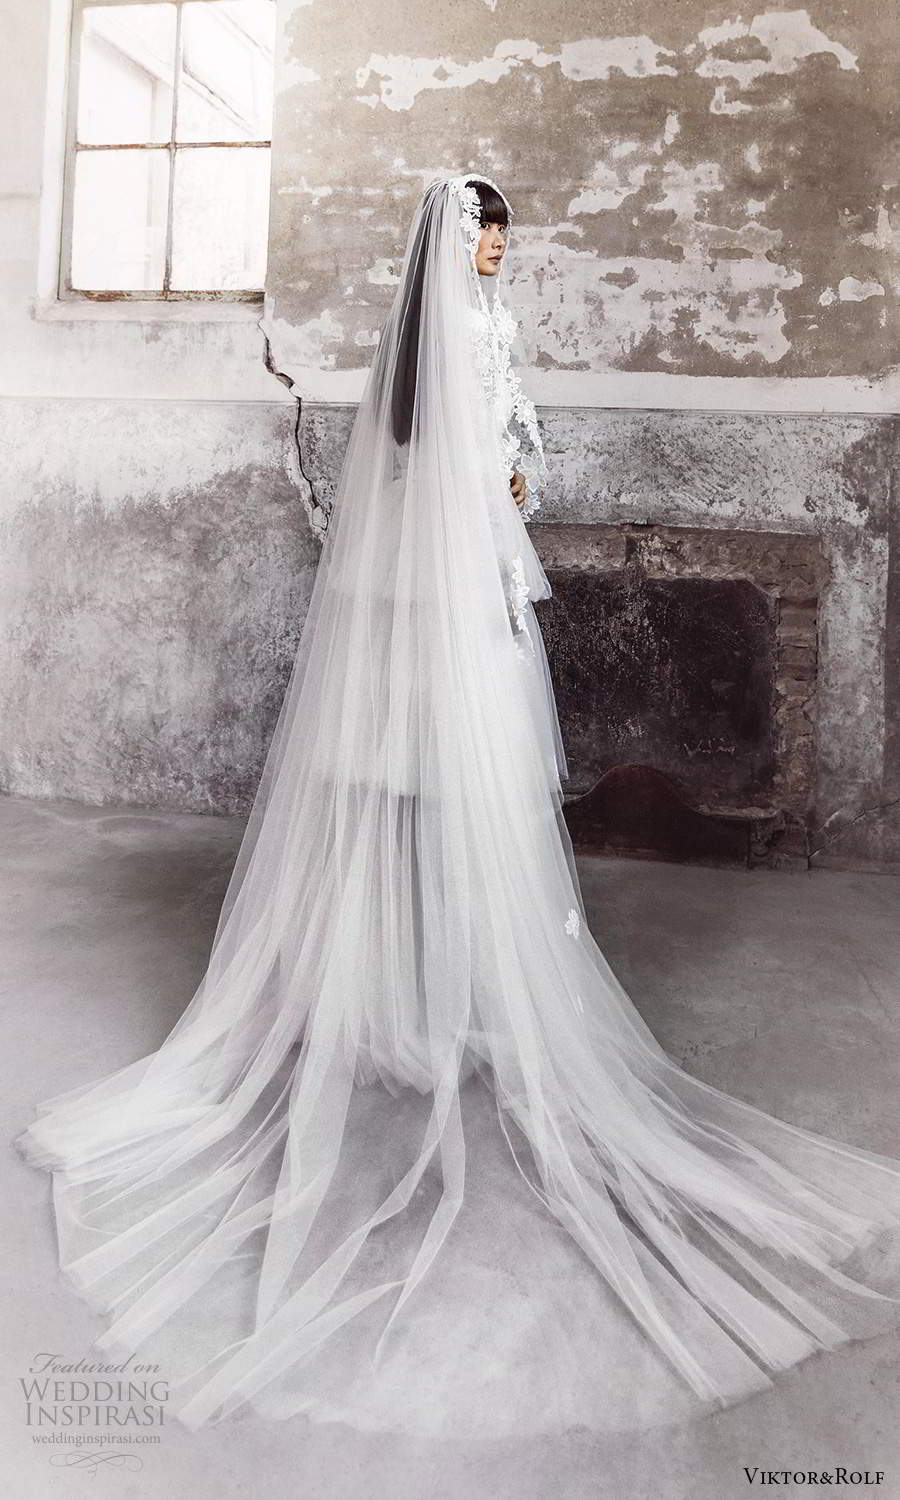 viktor and rolf fall 2021 bridal long sleeves high neckline embellished lace a line wedding dress tiered skirt (6) bv